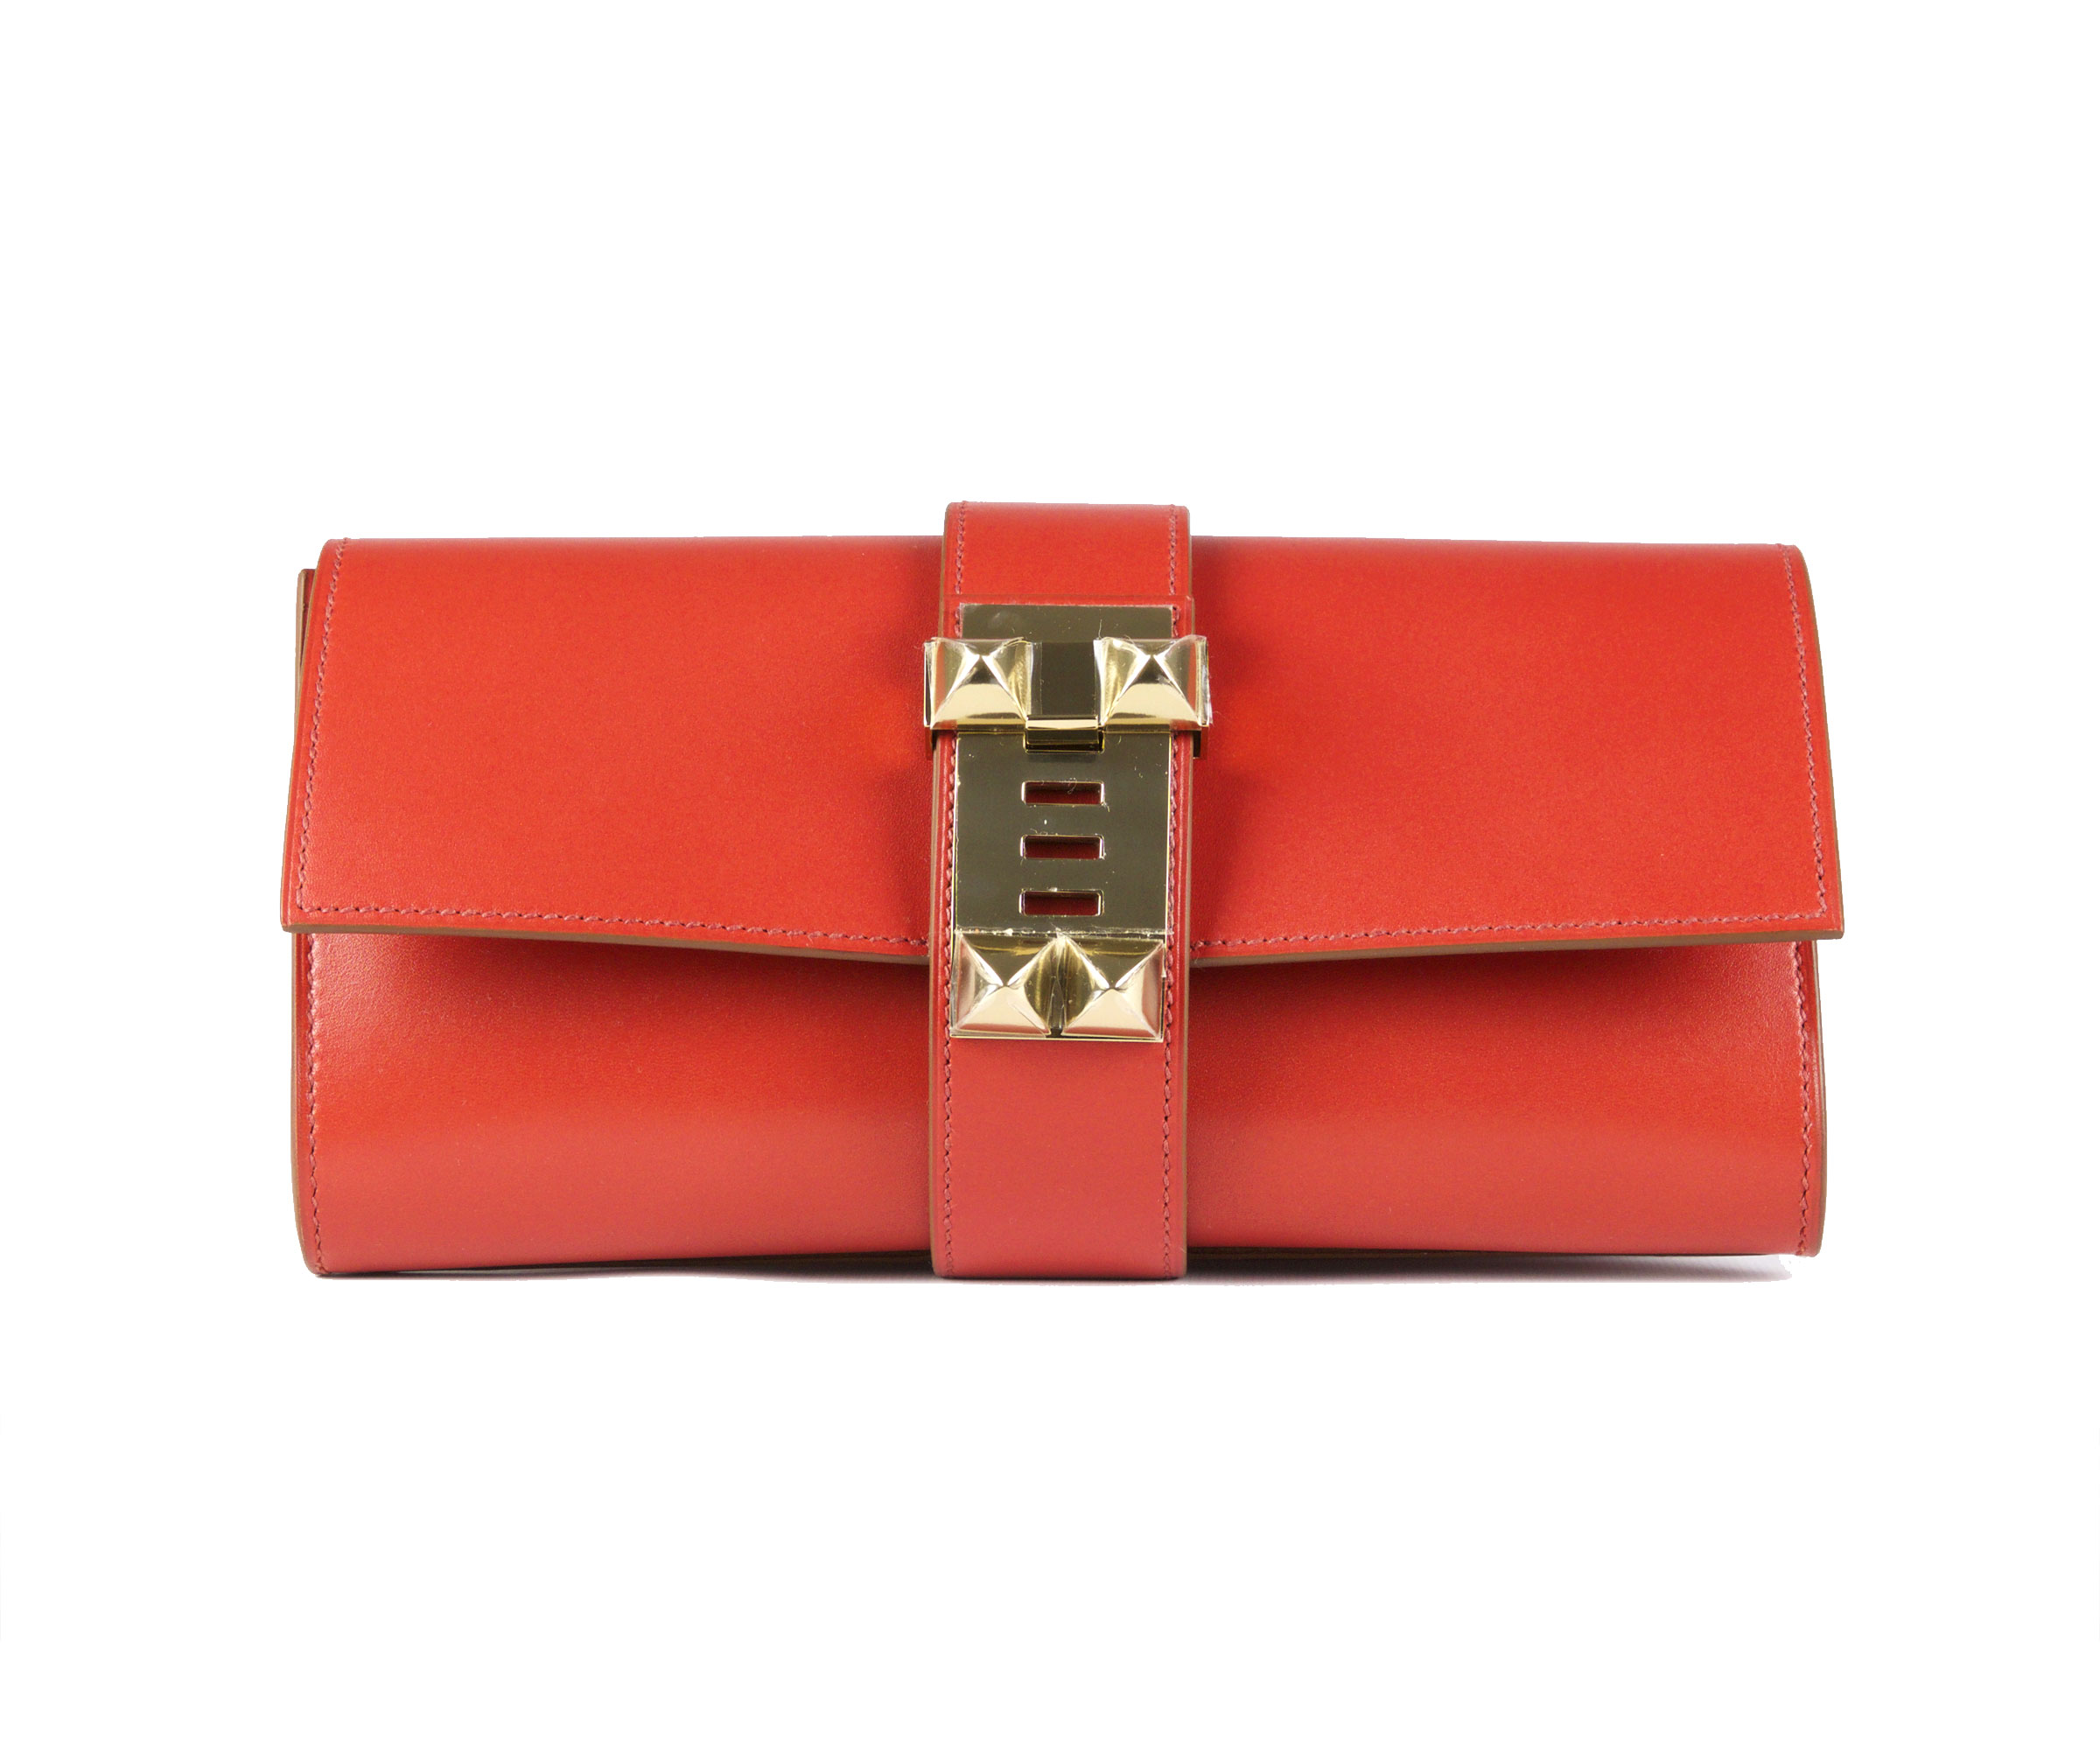 Hermes Medor Sanguine Box 23cm with Gold